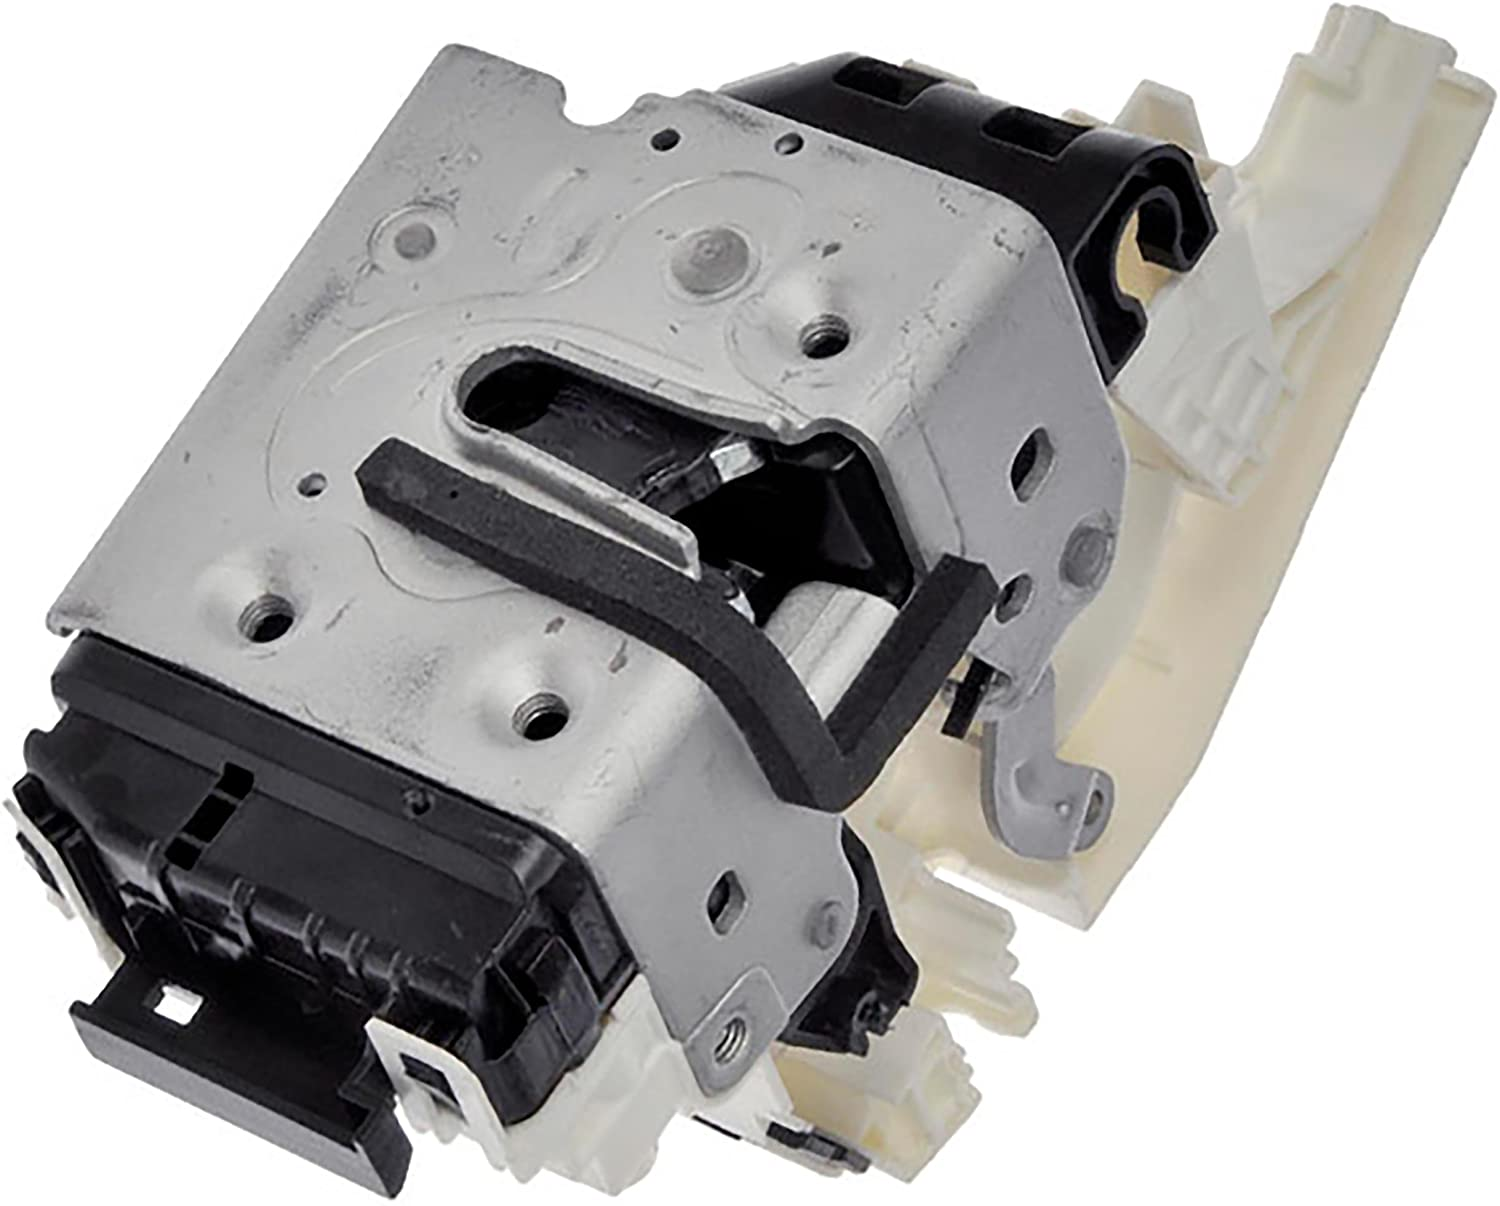 APDTY 136189 Integrated Door Lock Actuator Motor For Front Right (Passenger-Side) Select Chrysler 200 300 Pacifica/Dodge Charger Dart Journey/Jeep Cherokee (Replaces 4589916AB 4589916AC 4589916AD)